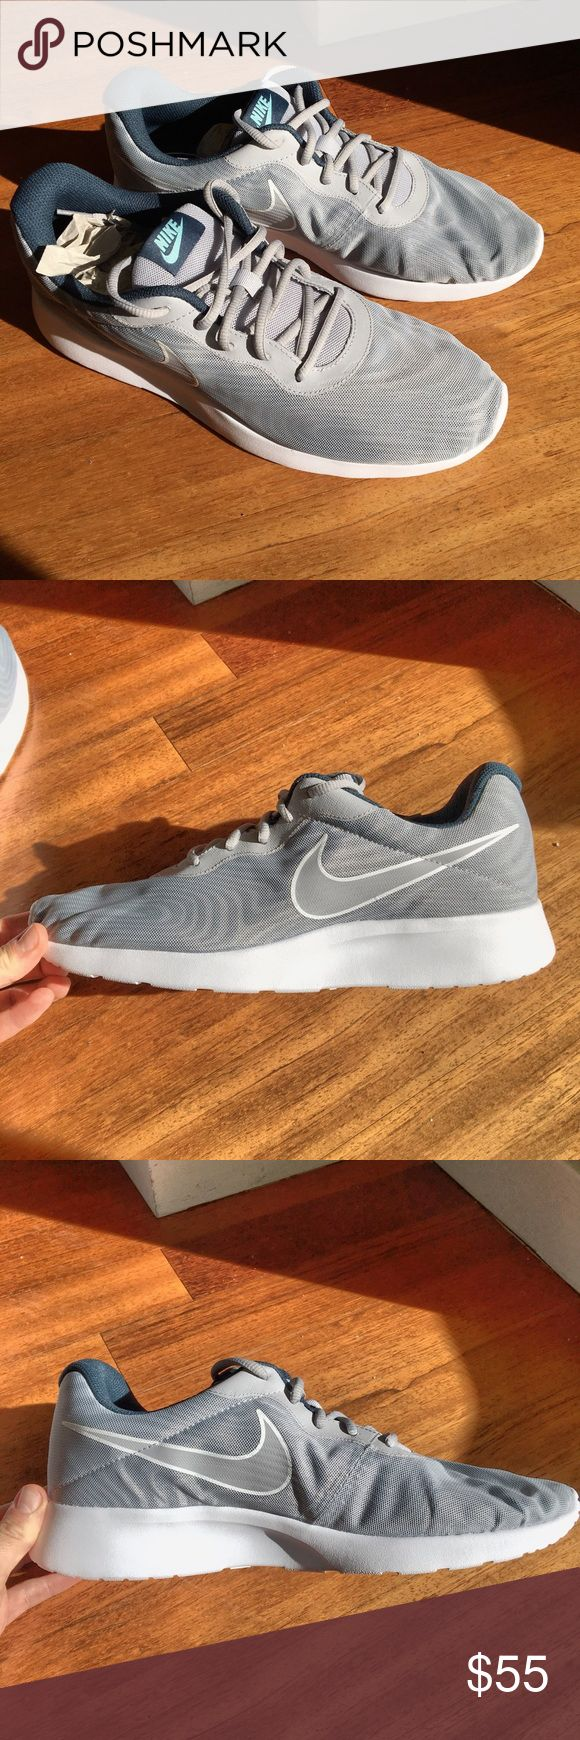 "NEW -  Nike Mens Tanjun Premium - Wolf Grey NEW - Nike Tanjun Premium. Wolf Grey. Named after the Japanese word for ""simplicity,"" the Nike Tanjun Men's Shoe offers a streamlined, modern design for an elevated everyday look. Nike Shoes Athletic Shoes"